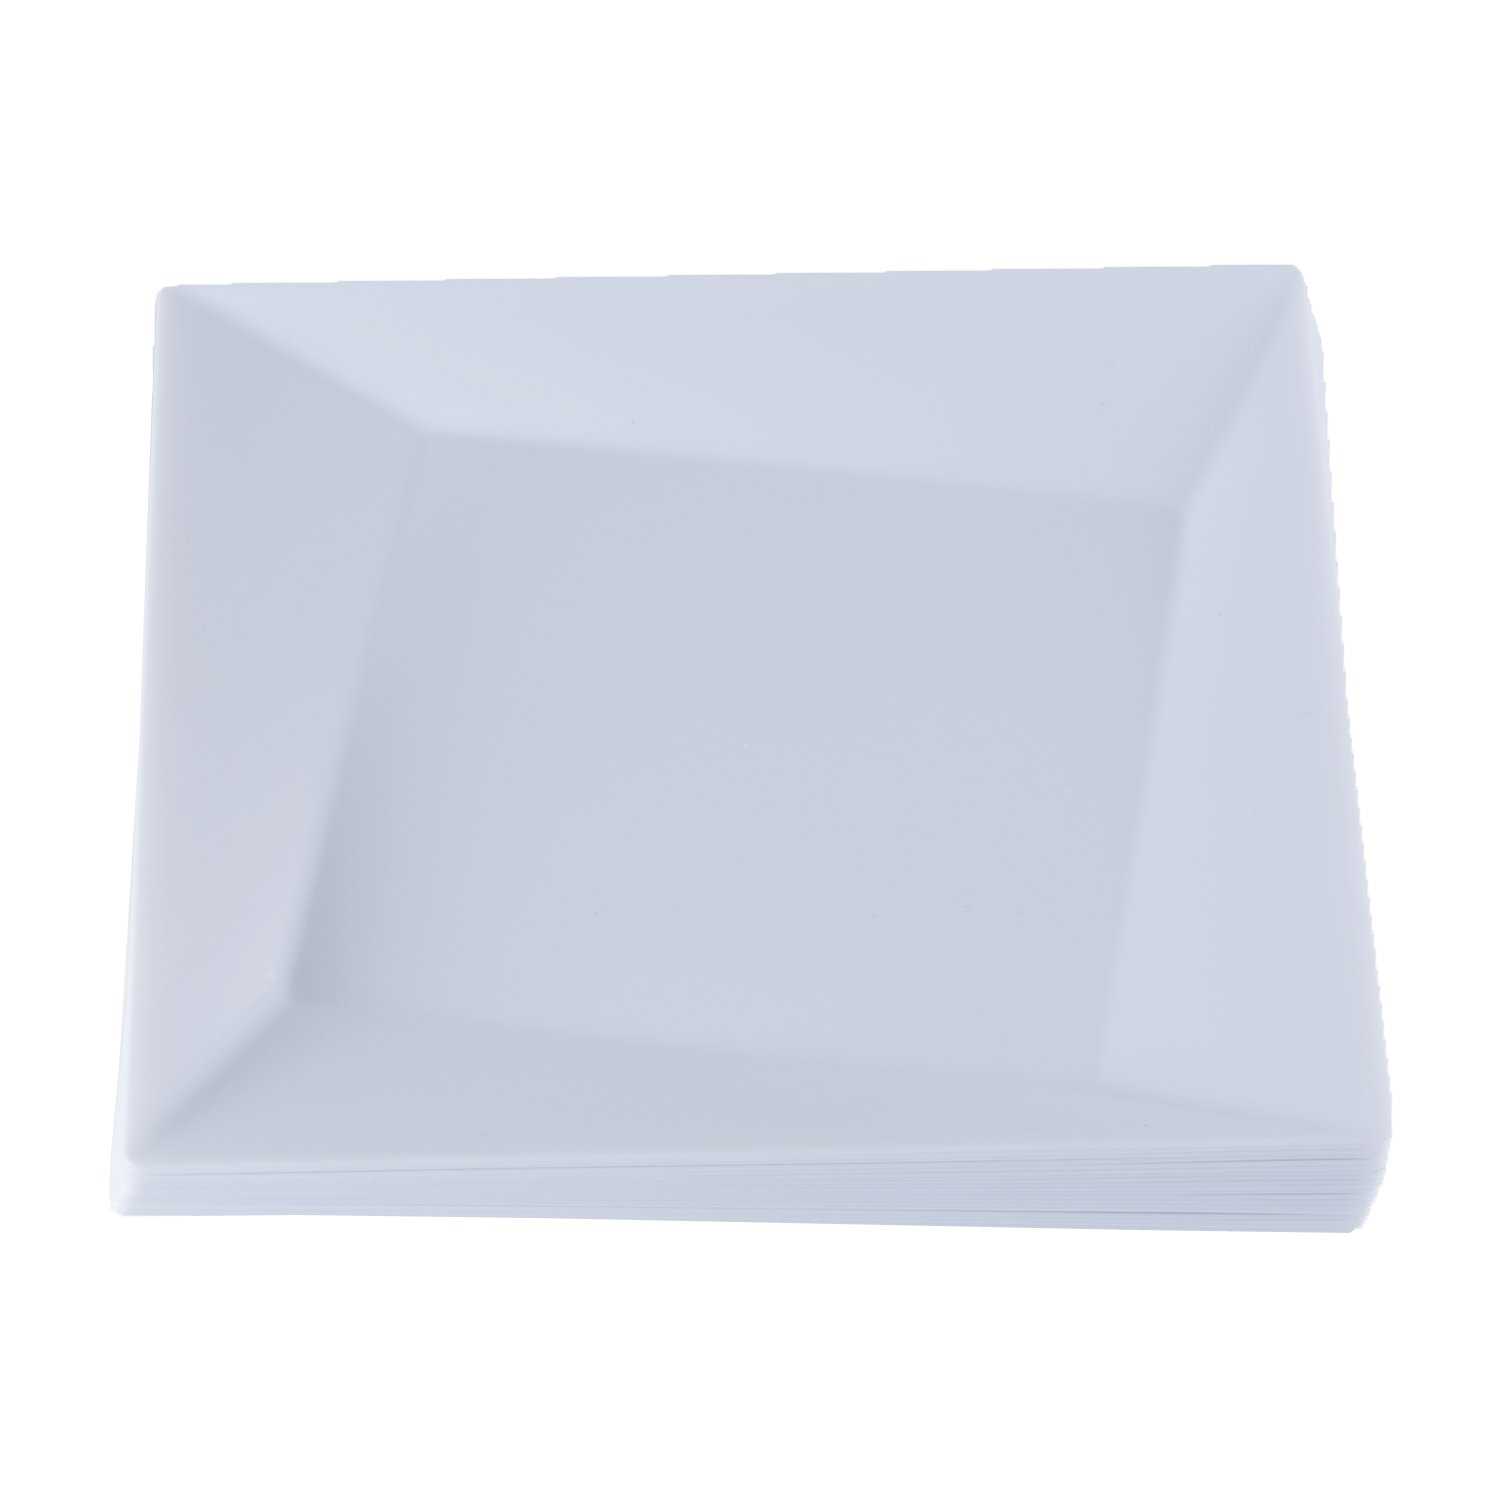 Party Essentials 20-Count Hard Plastic 9.5'' Twisted Square Lunch/Dinner Plates, White